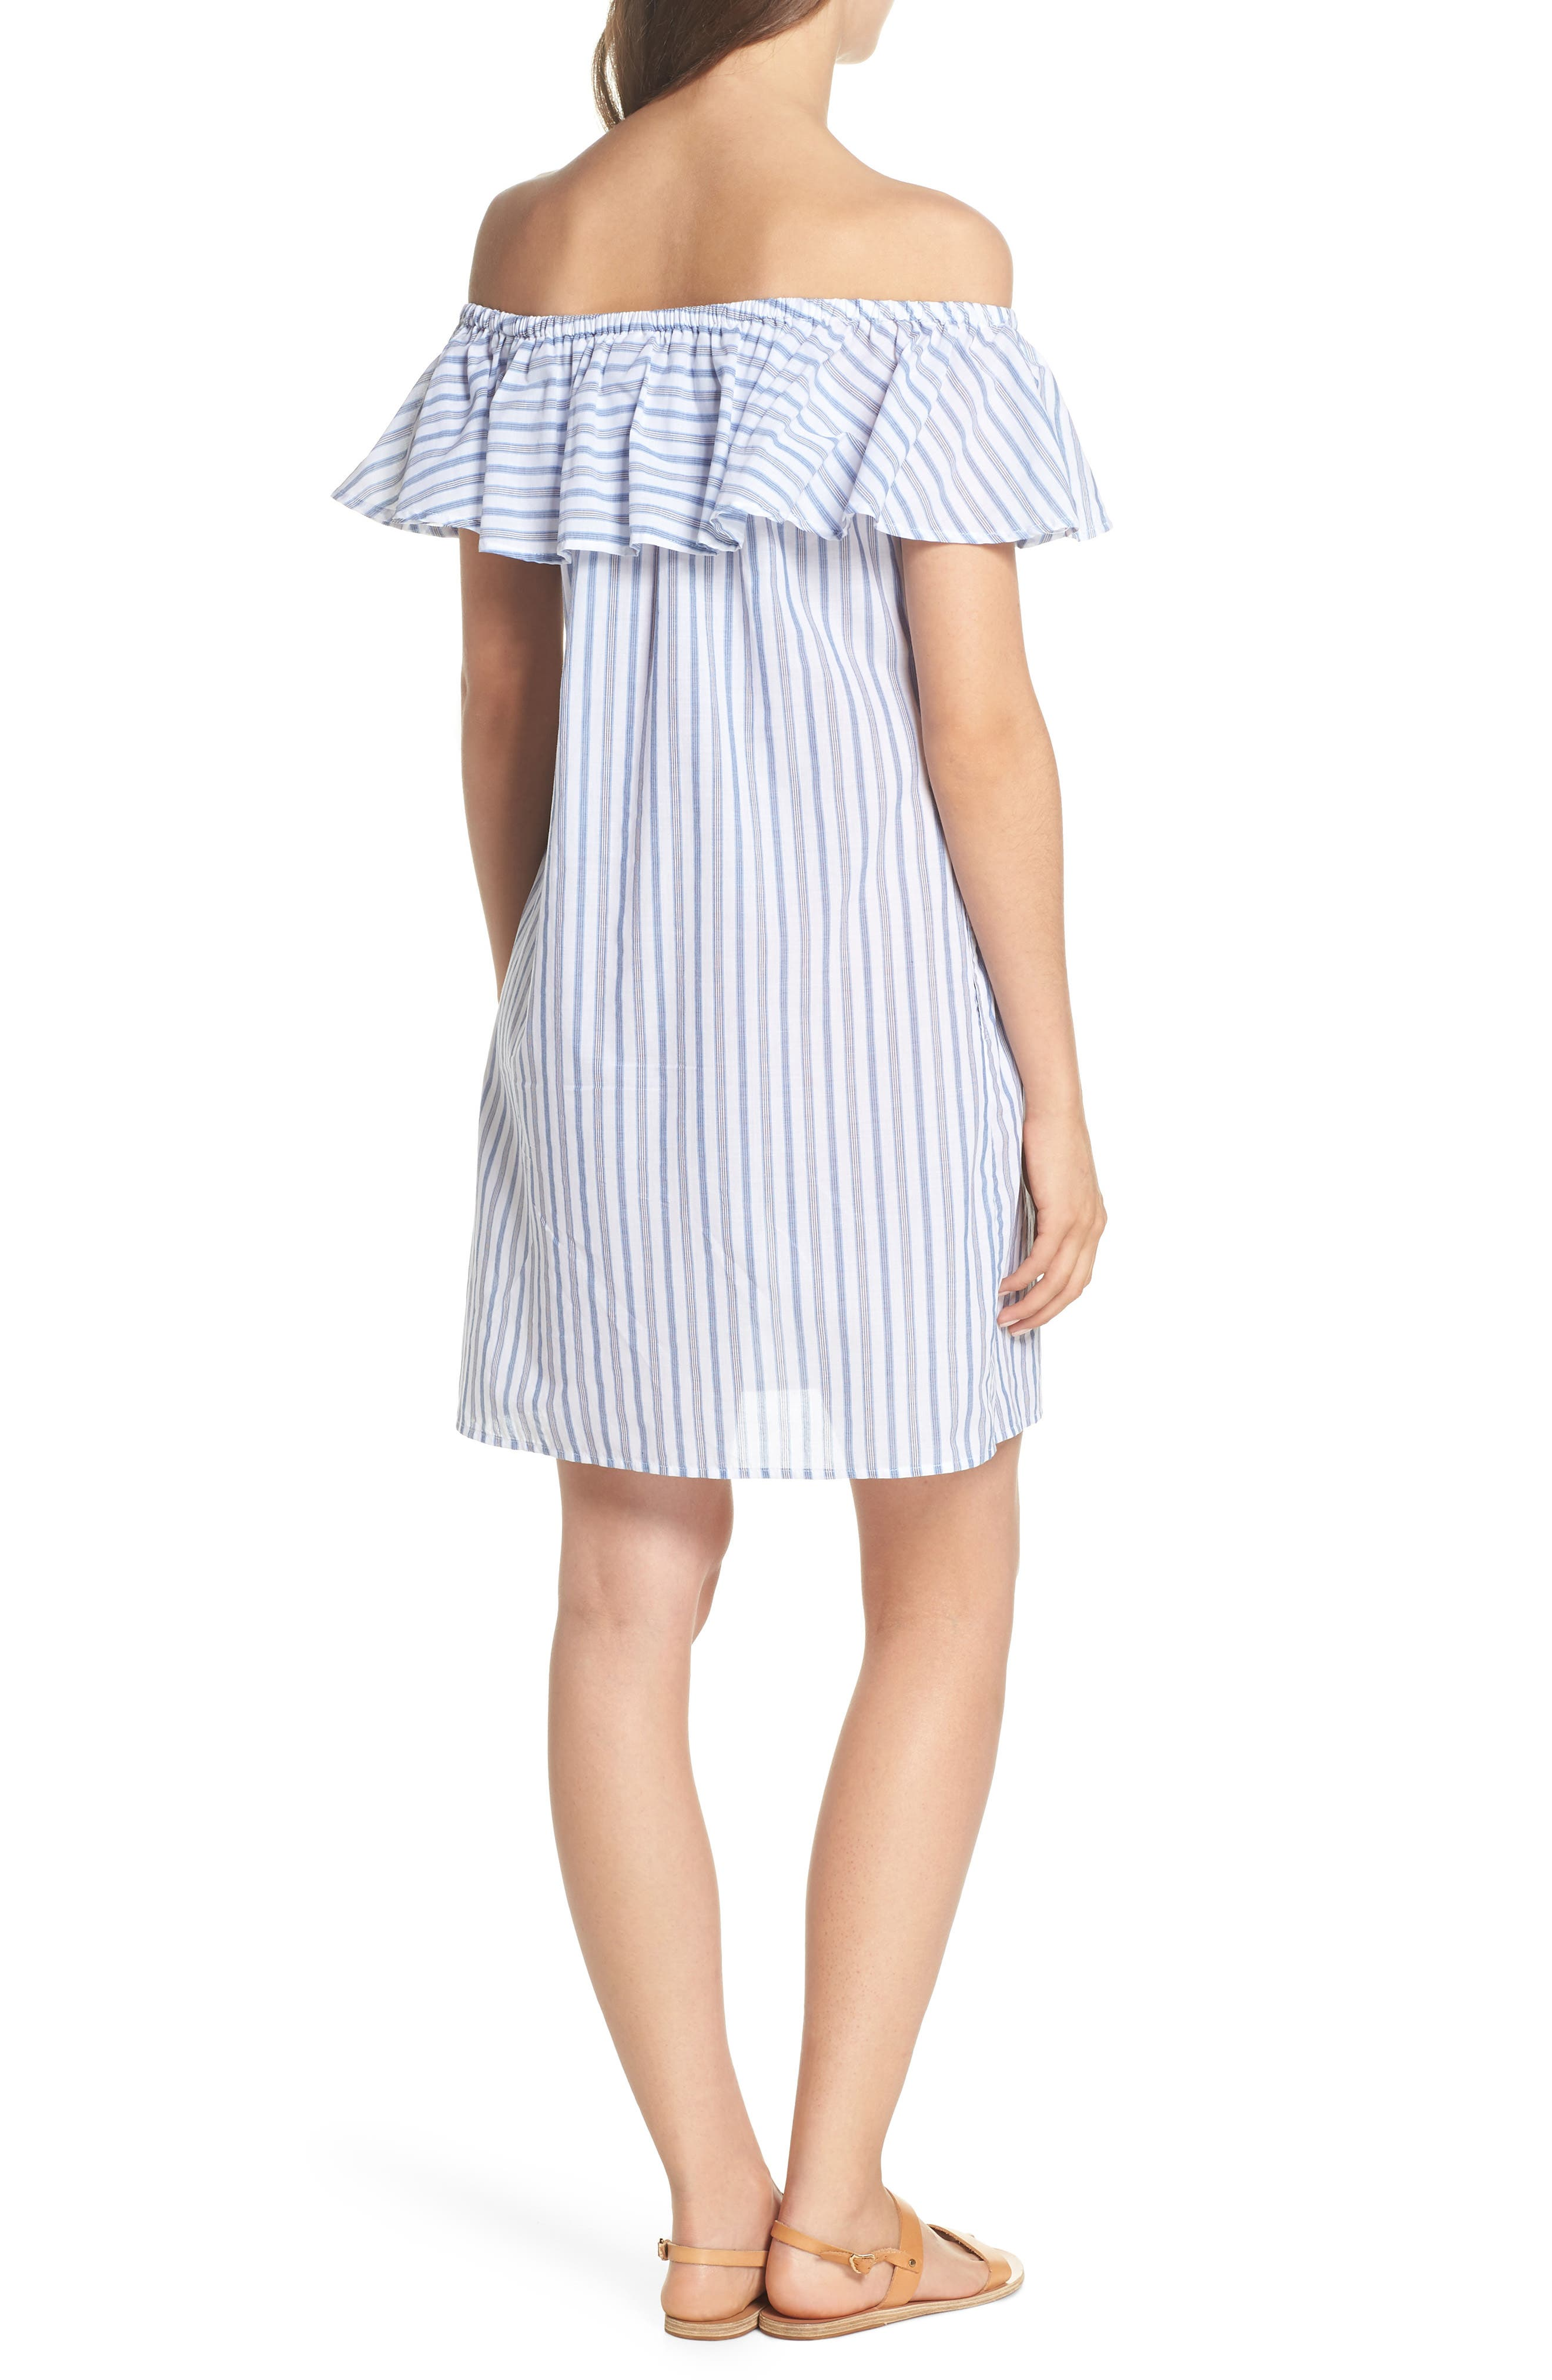 Ticking Stripe Off the Shoulder Cover-Up Dress,                             Alternate thumbnail 2, color,                             White